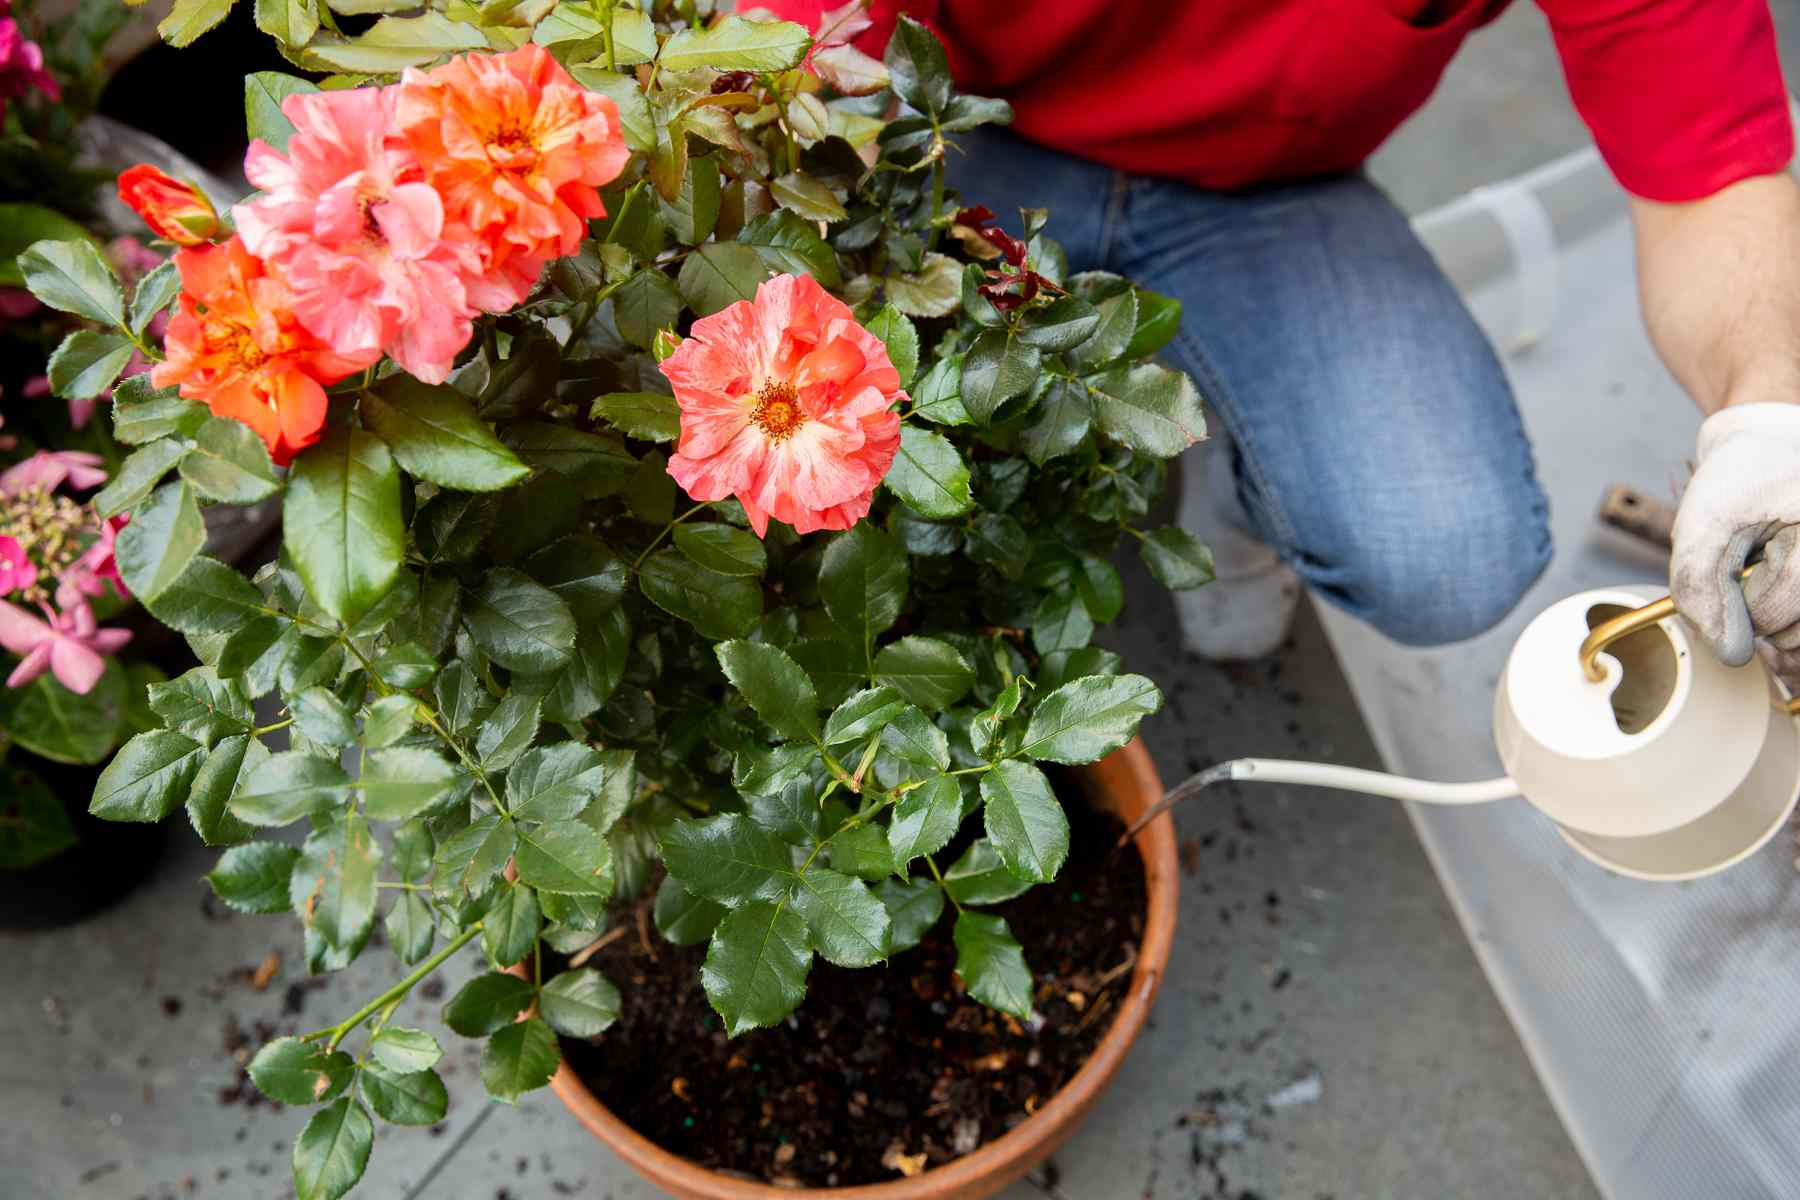 Water poured from white watering can into recently potted rose bush